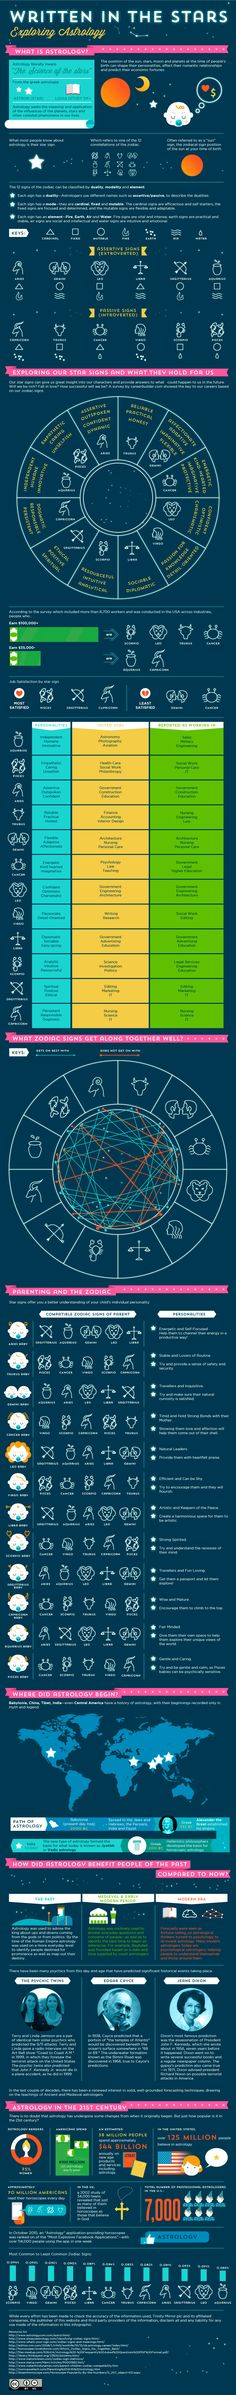 Produced by The Mirror this astrology infographic is packed with really interesting information about the…